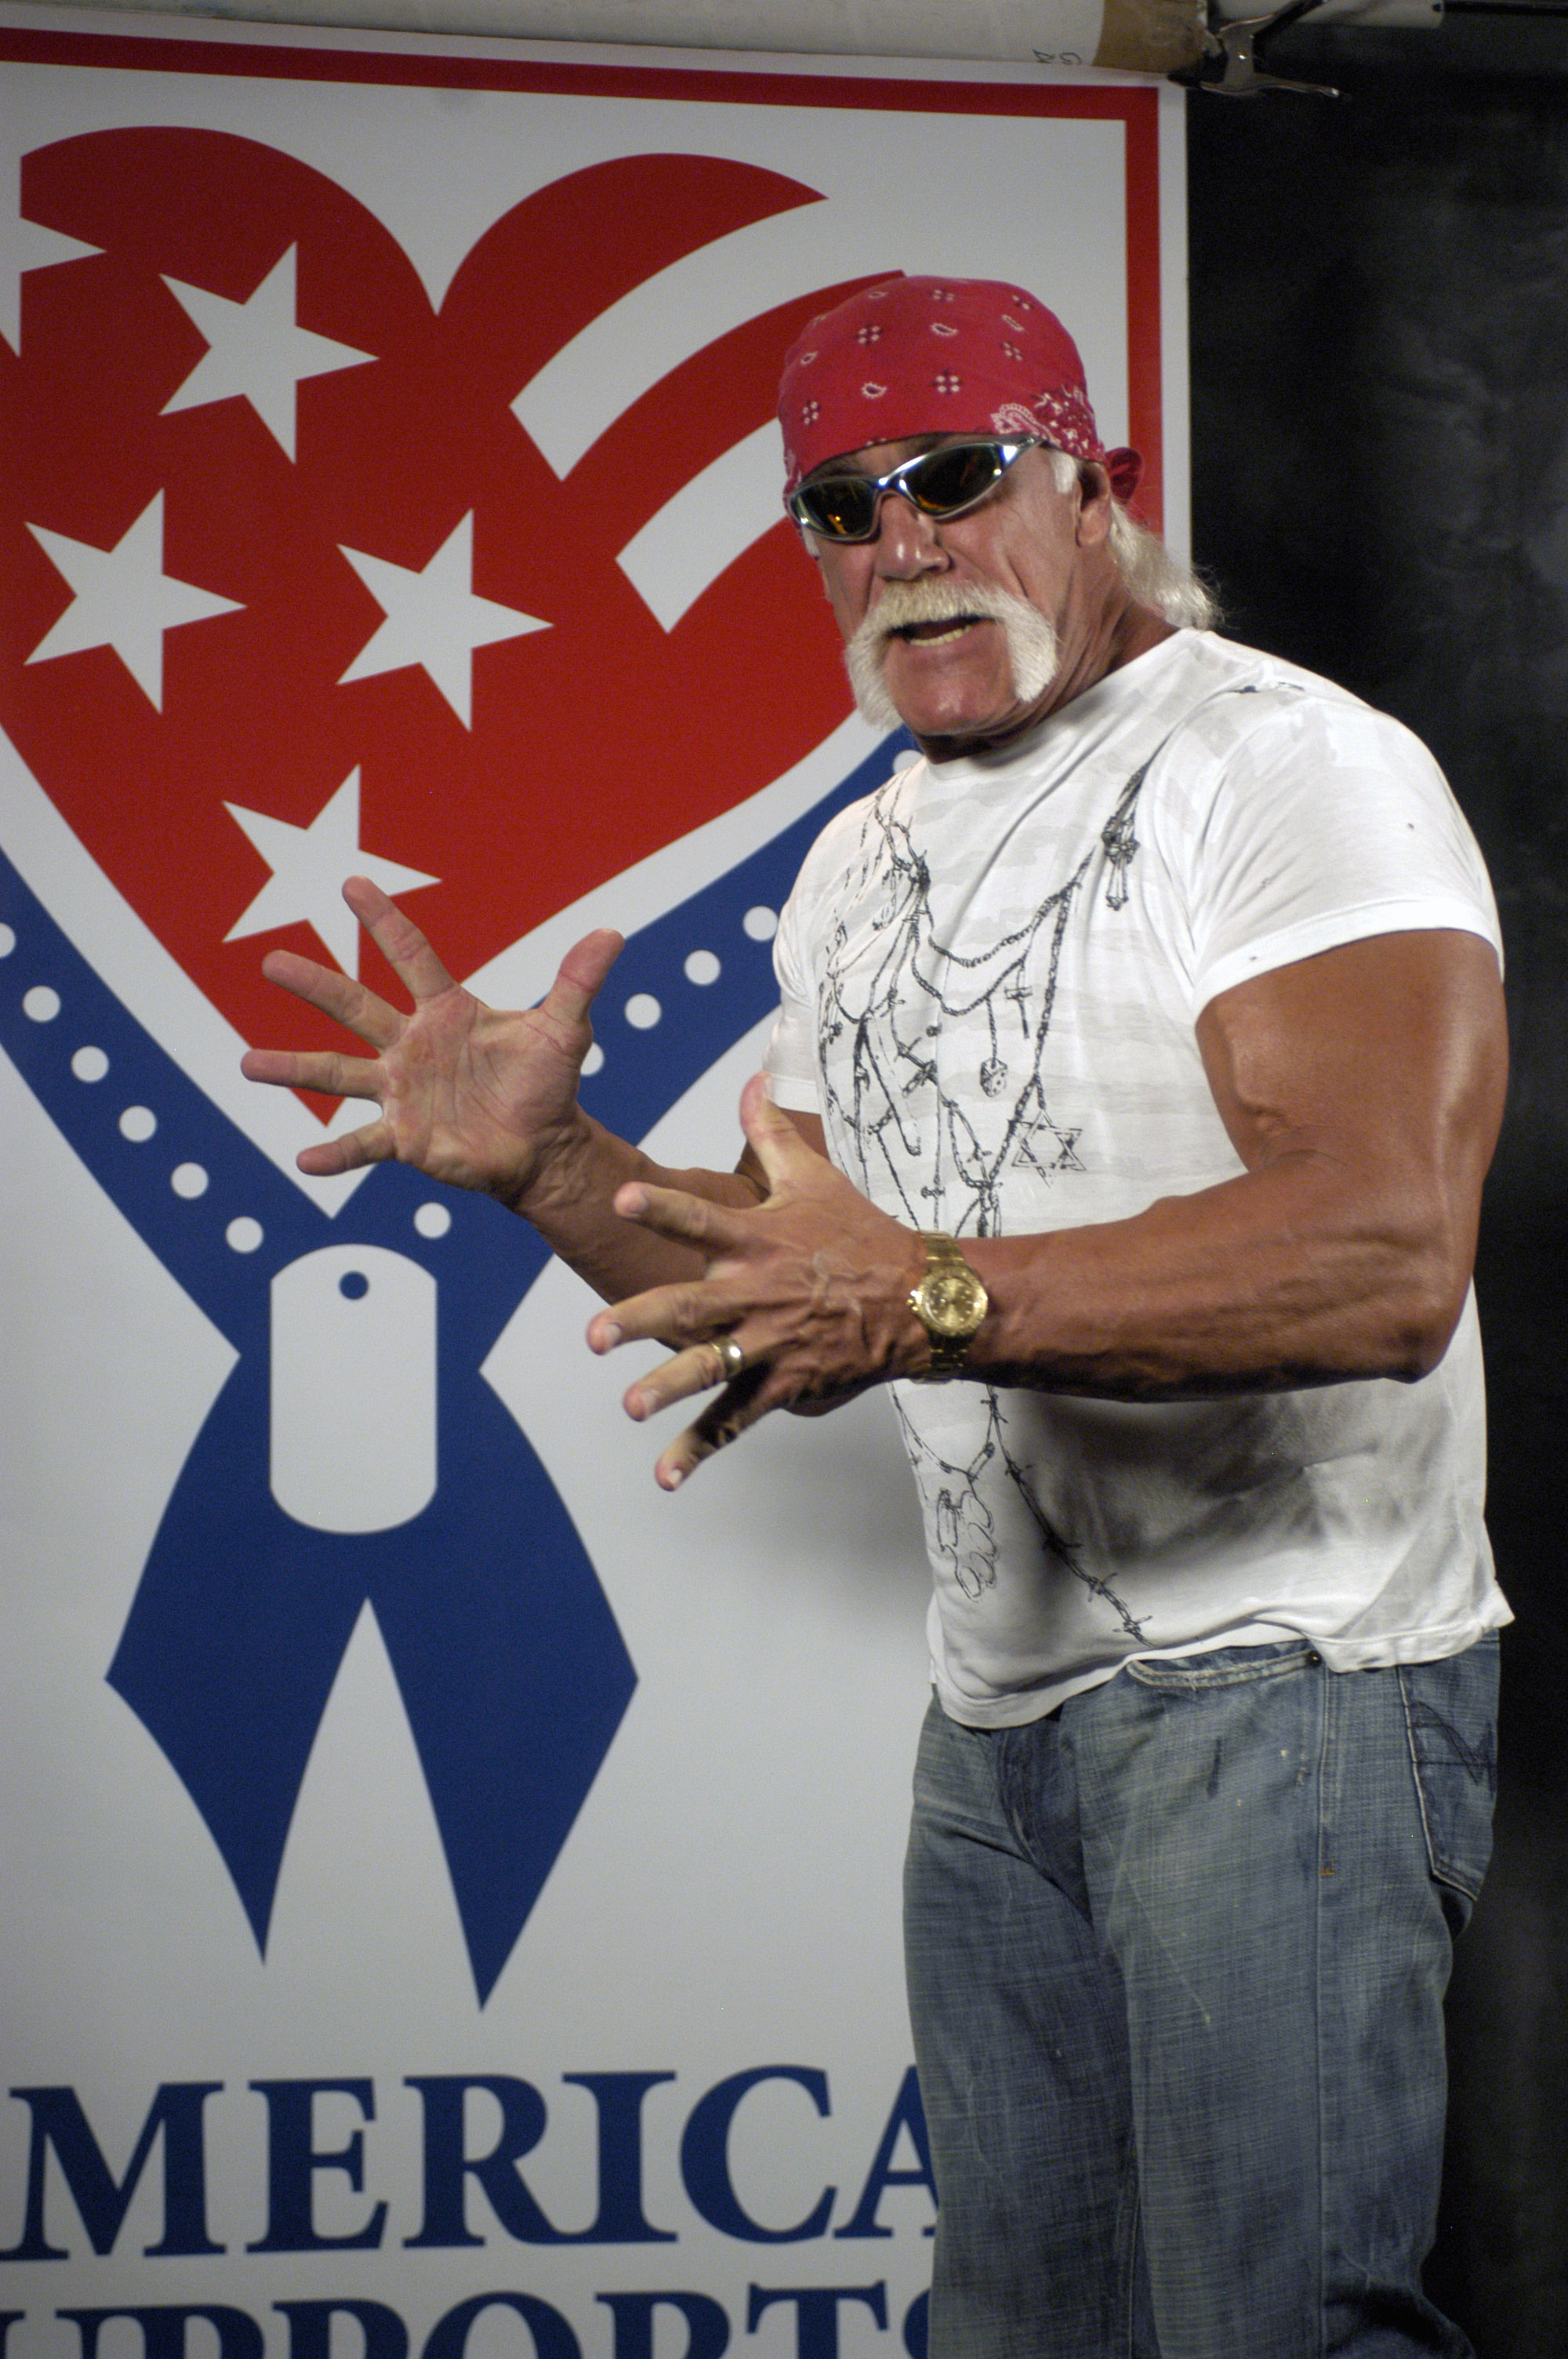 WWE superstar Hulk Hogan thanks American servicemembers for their sacrifice. Wounded troops recovering at Walter Reed were special guests at the WWE's